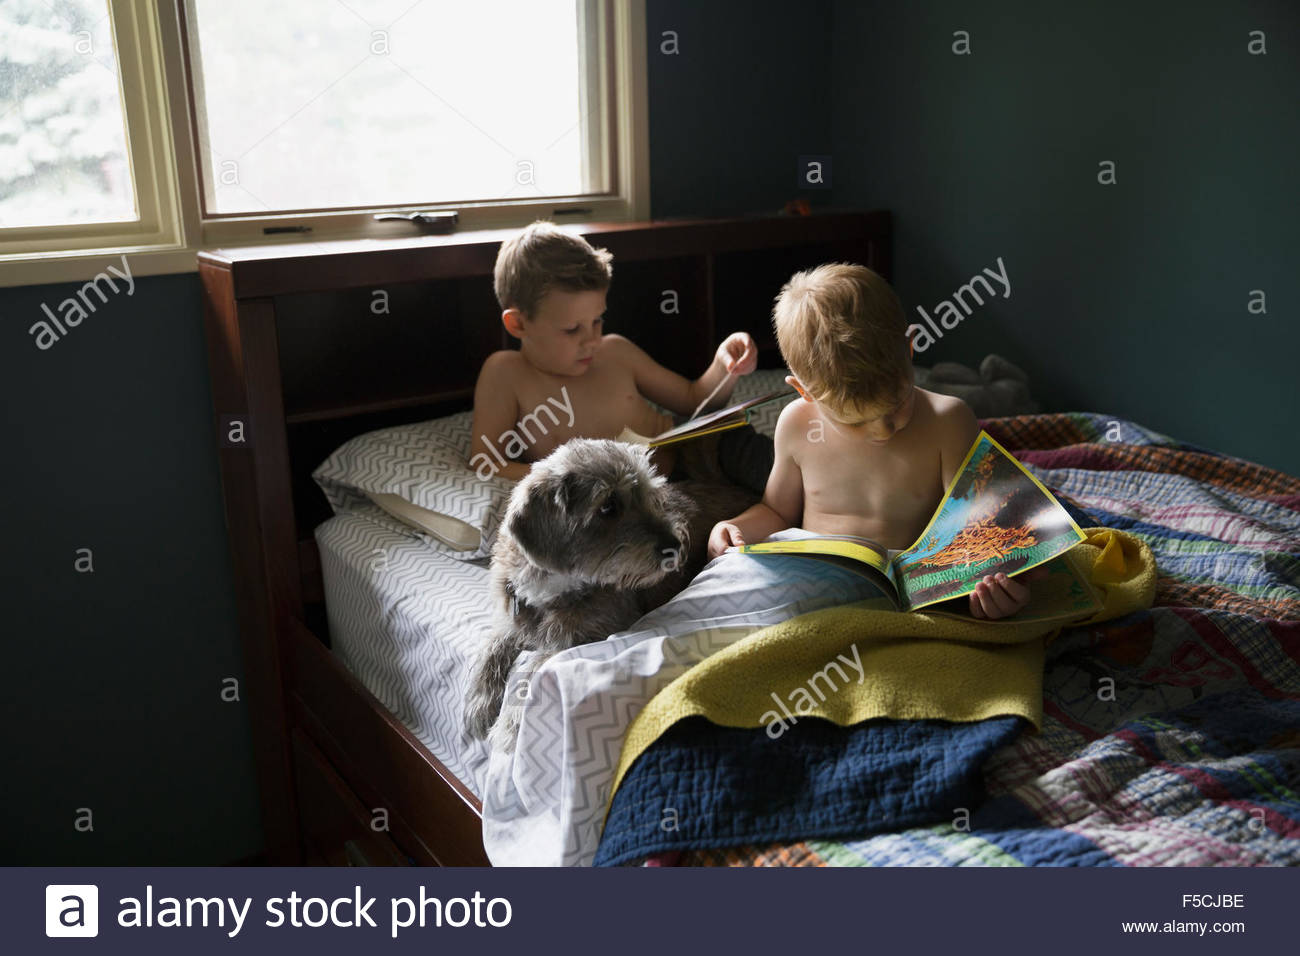 Brothers reading books in bed with dog - Stock Image